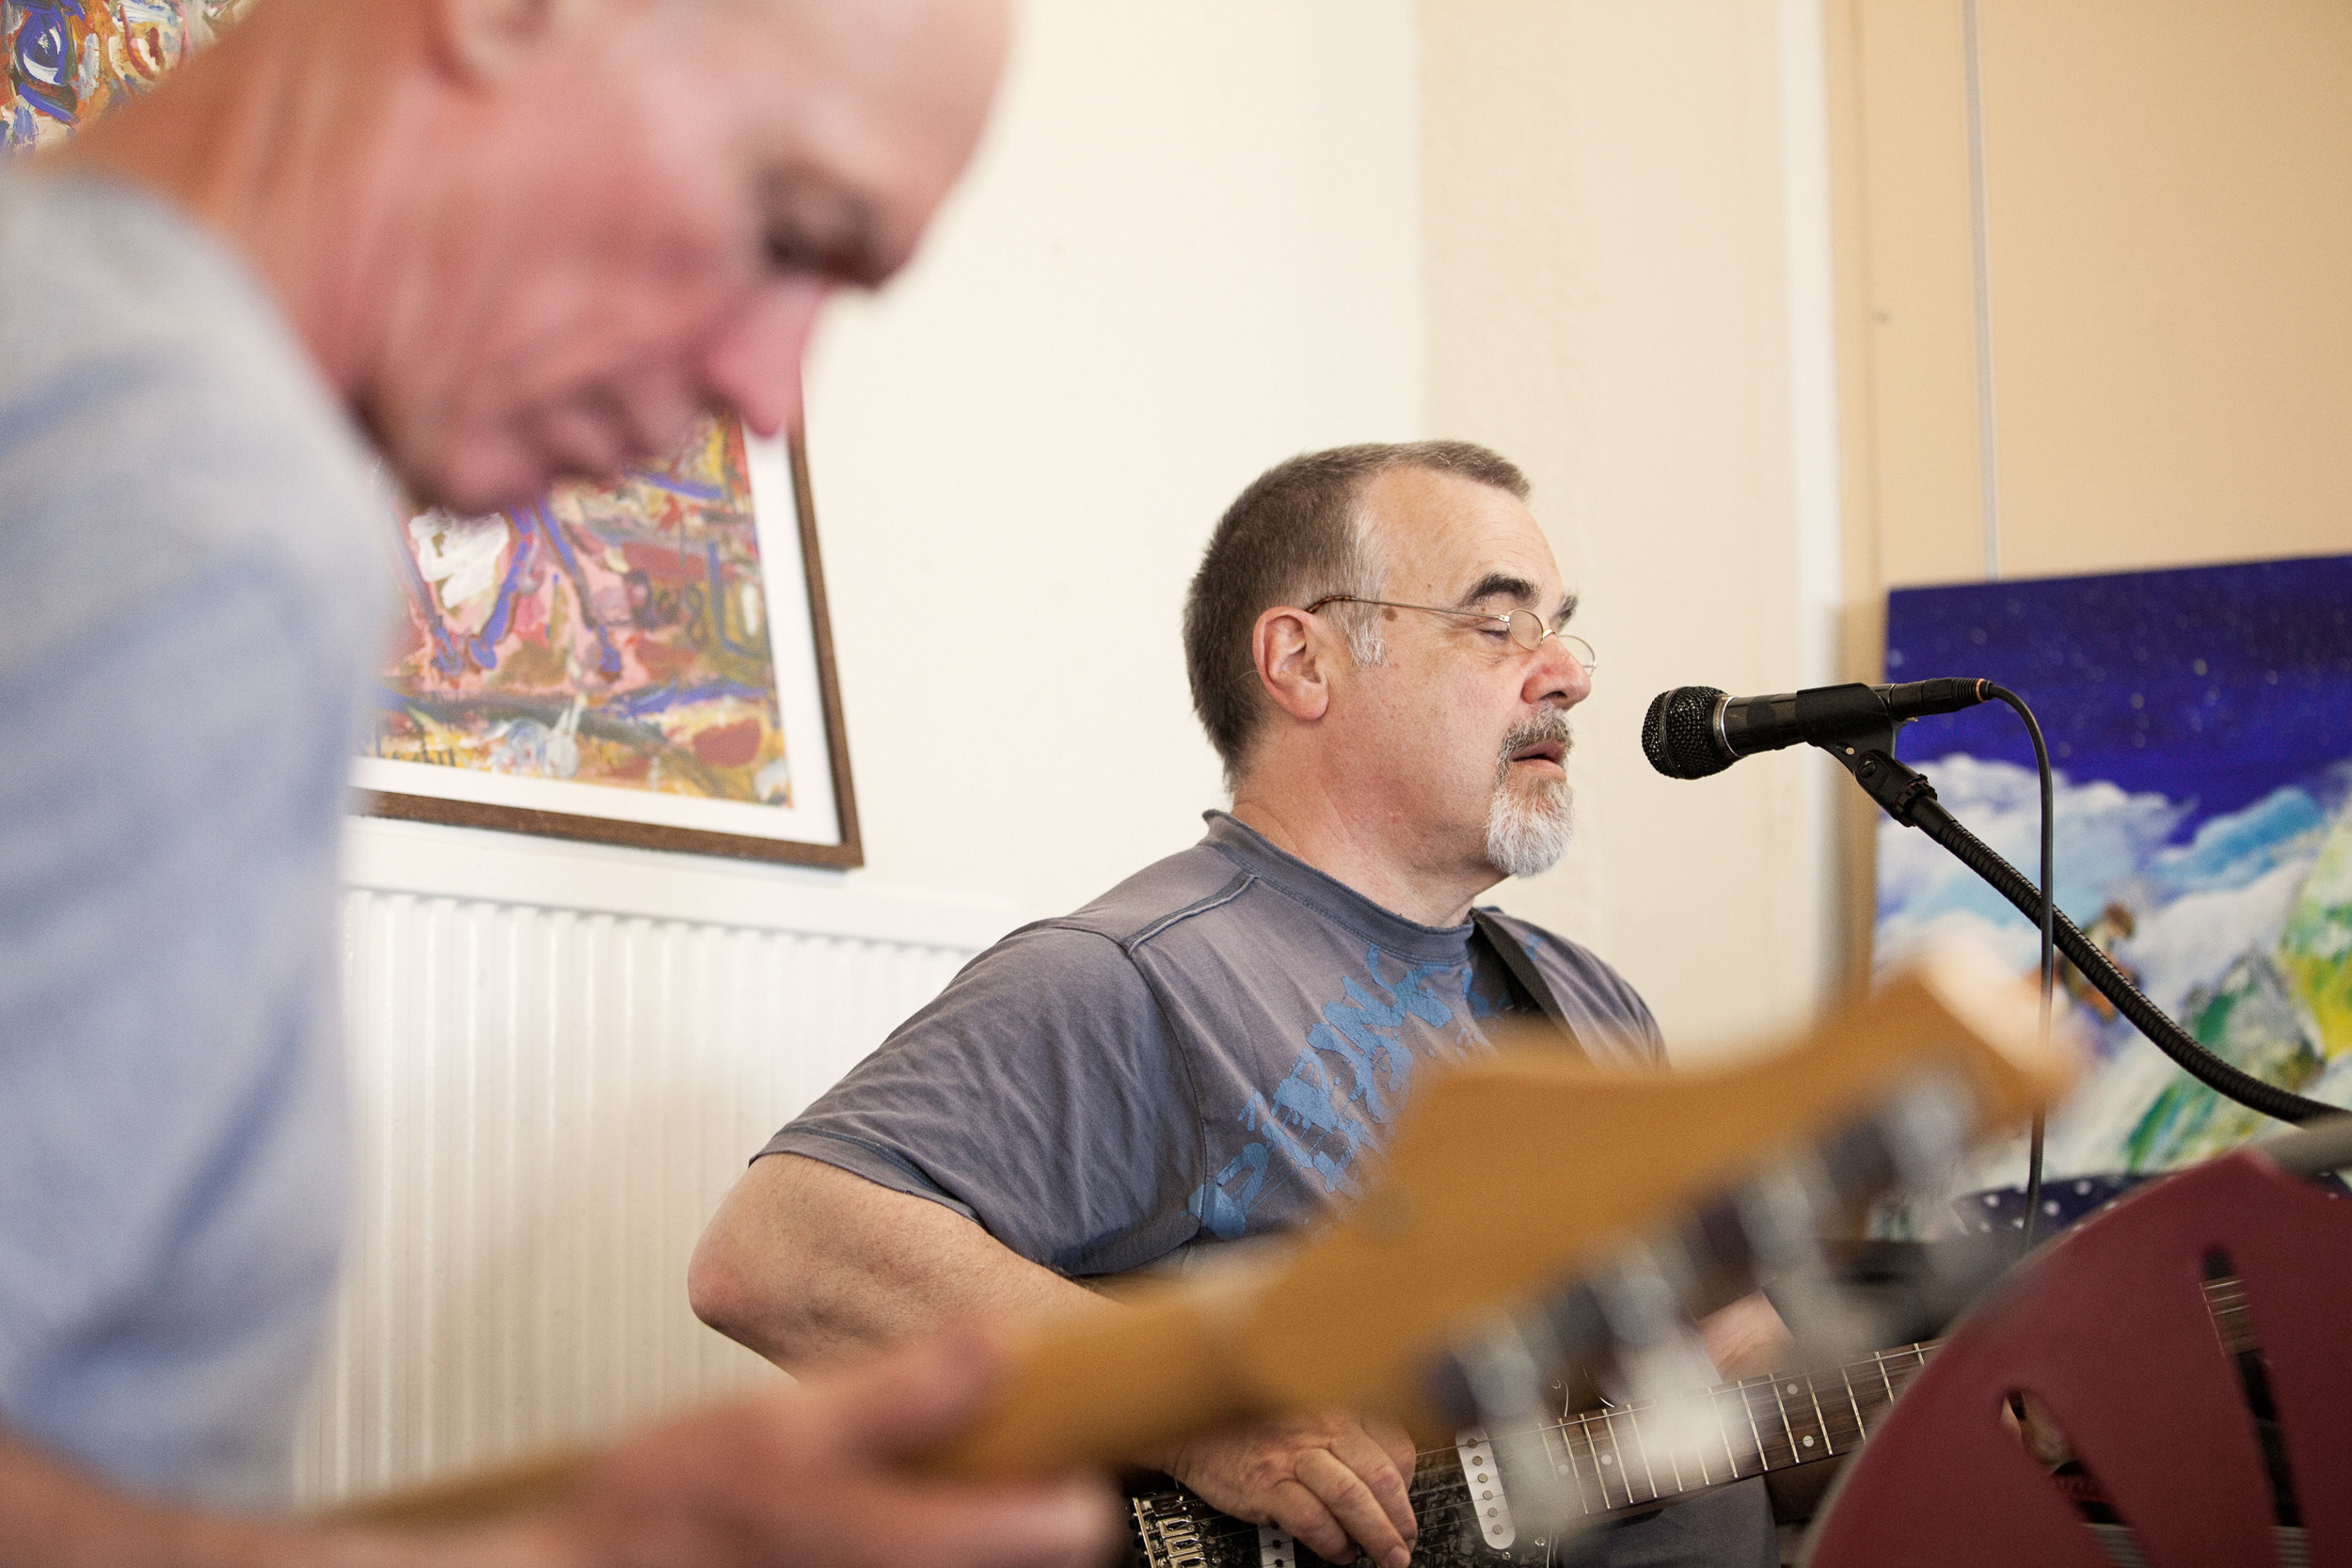 The Music Group - Volunteers and members bring eclectic musical talent to the 240Project centre every week, inspiring the group to release tension and enjoy a festive hour together. Whether playing timeless favourites or member-composed melodies, it's always a good time.